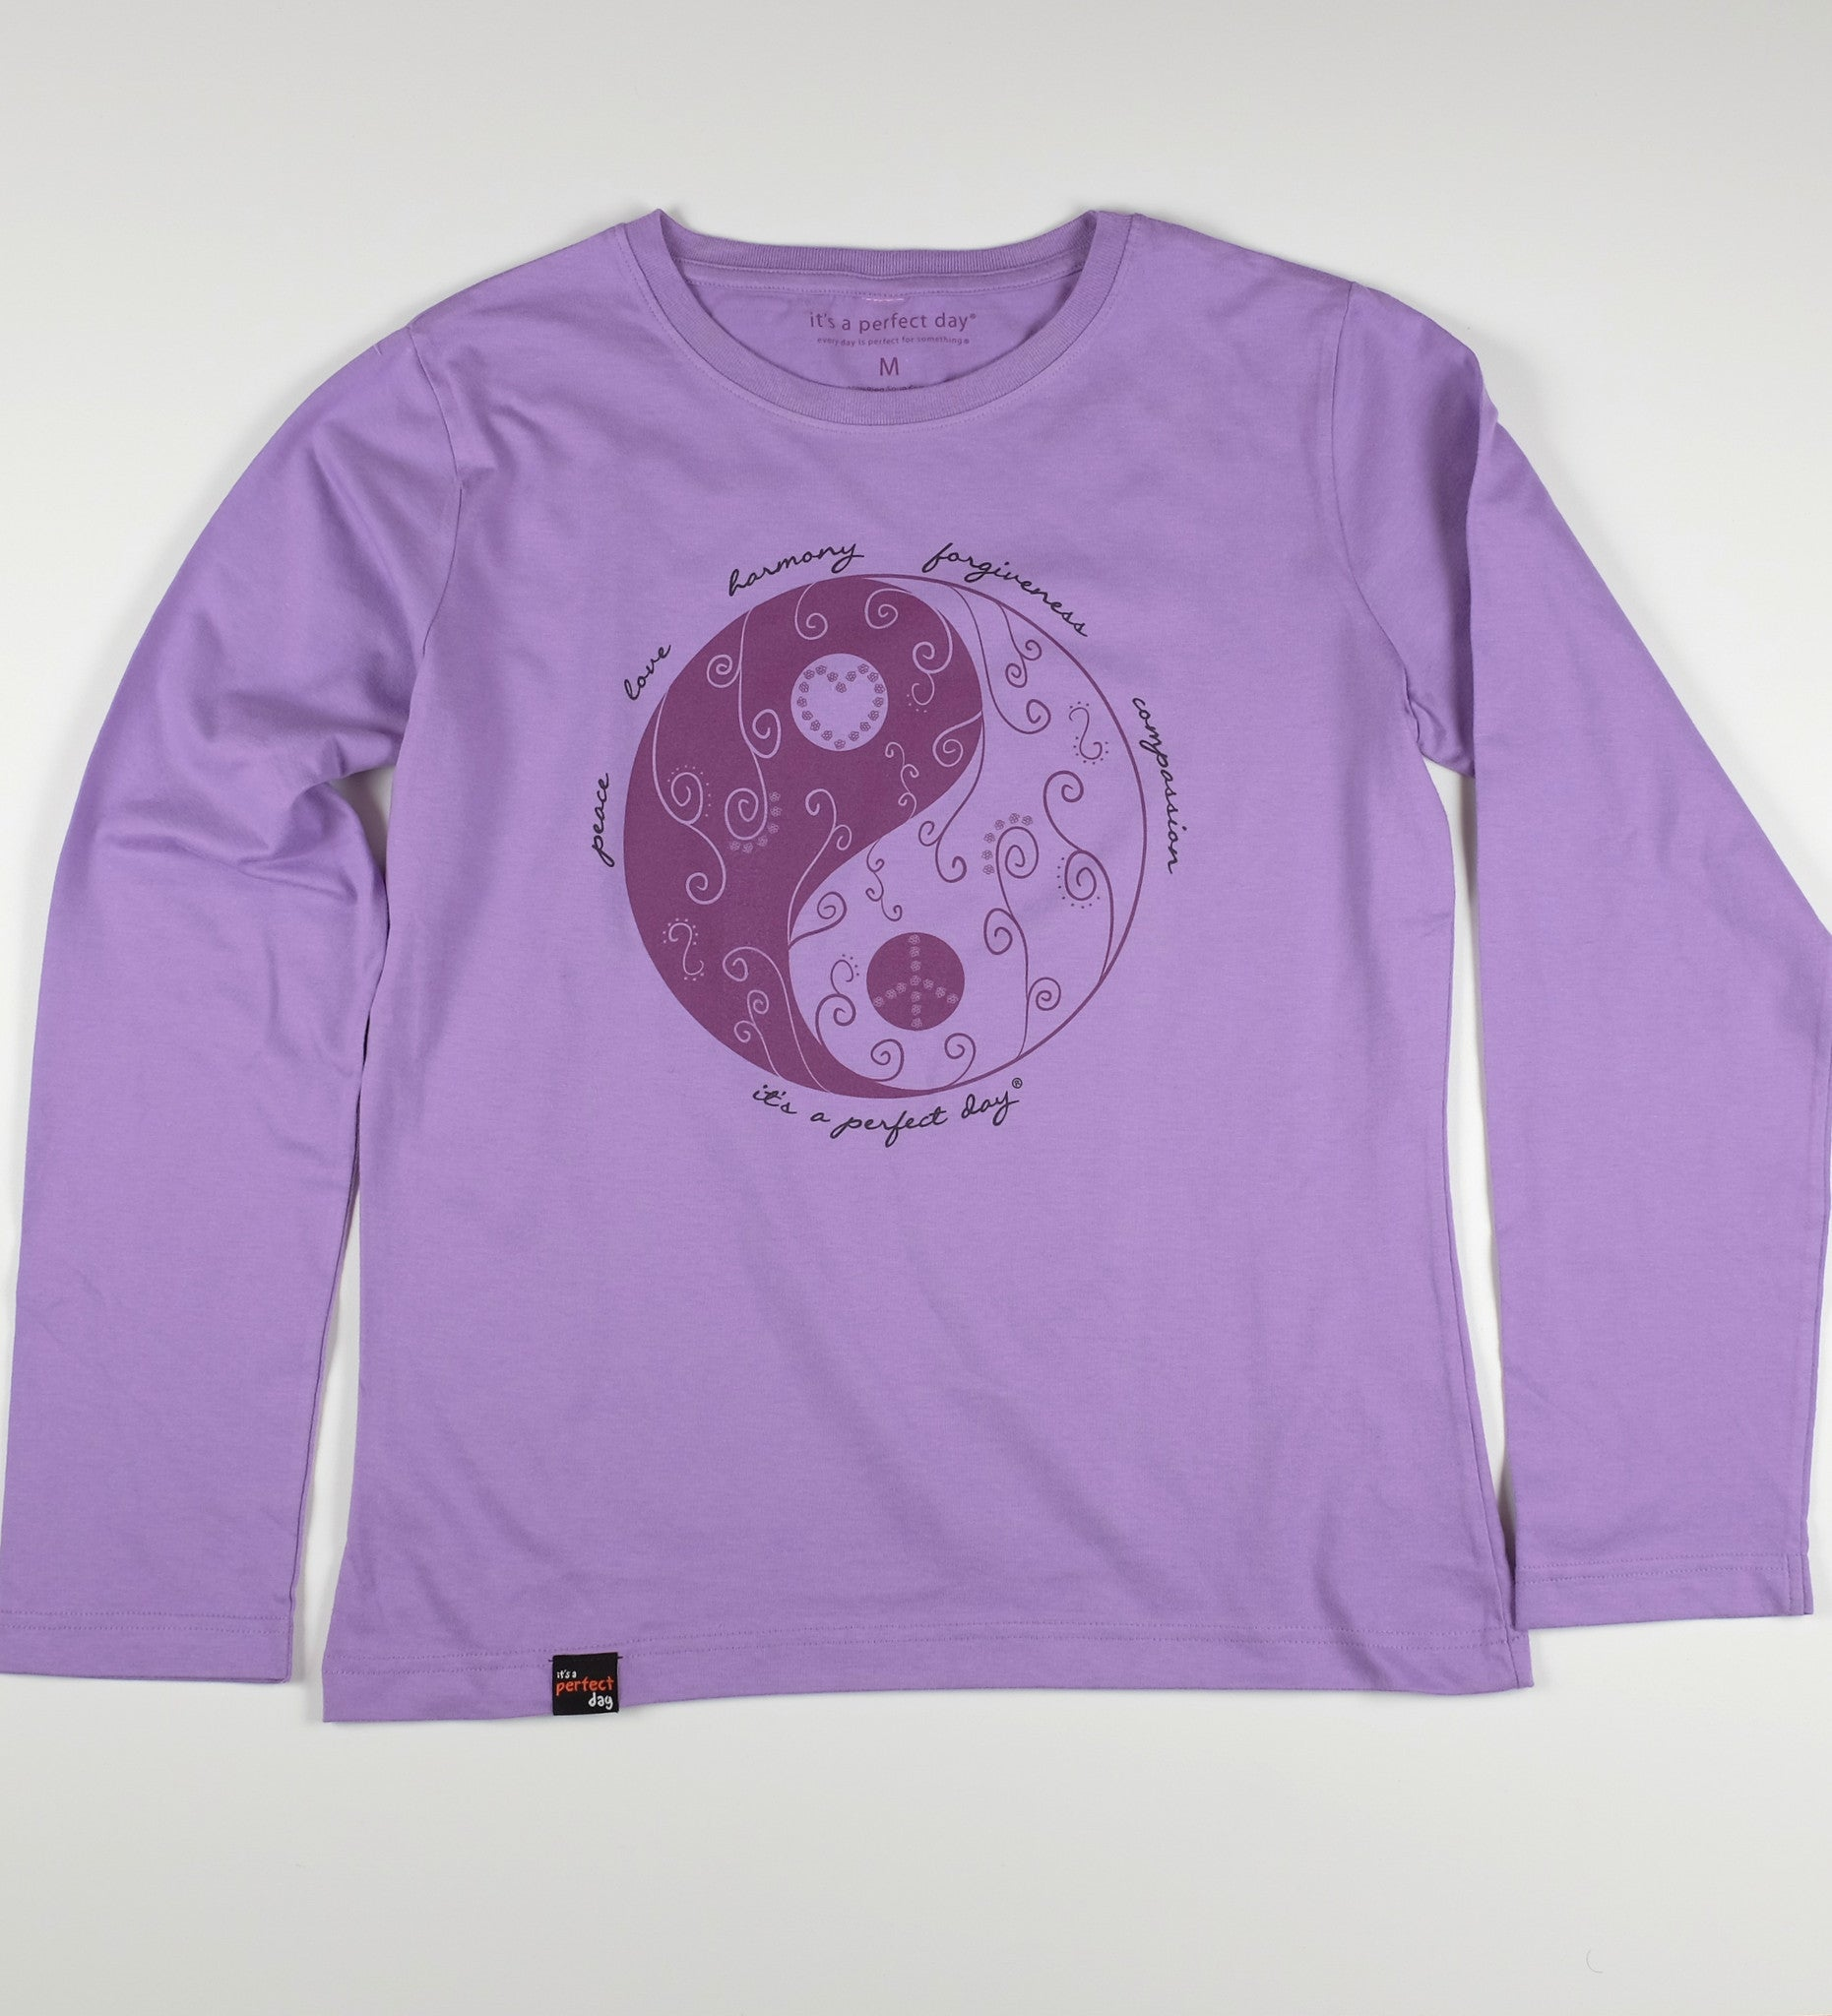 Yin Yang Tee (Long Sleeve)